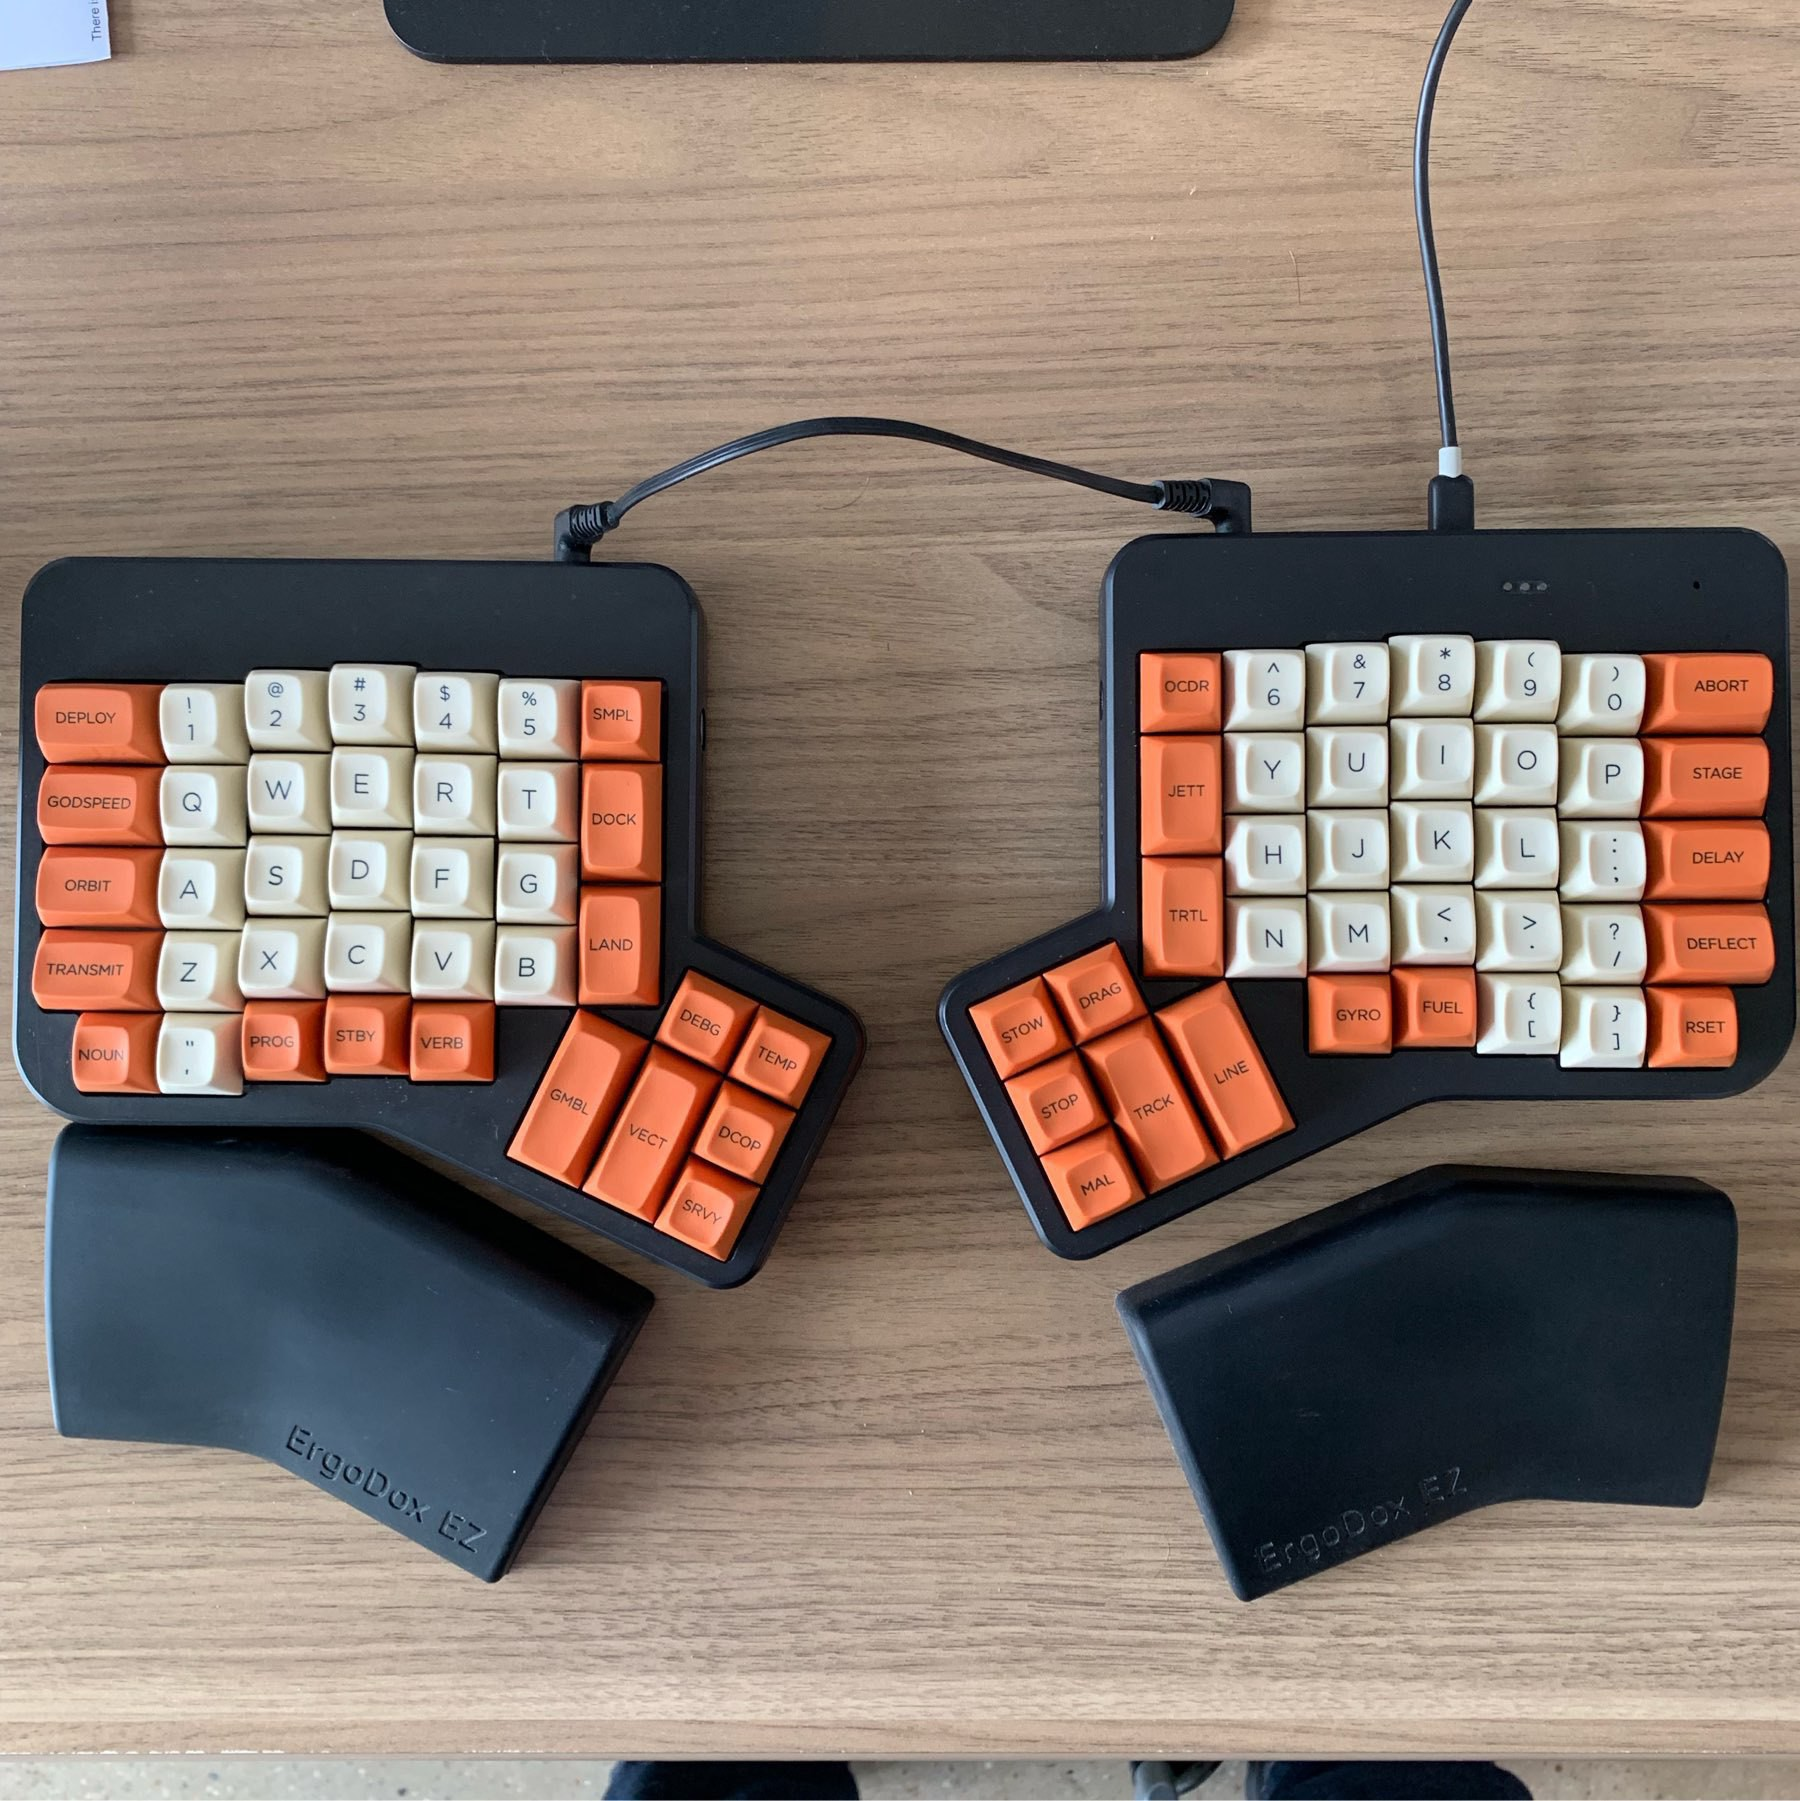 An ergodox keyboard with MiTo Godspeed keycaps in orange and white.